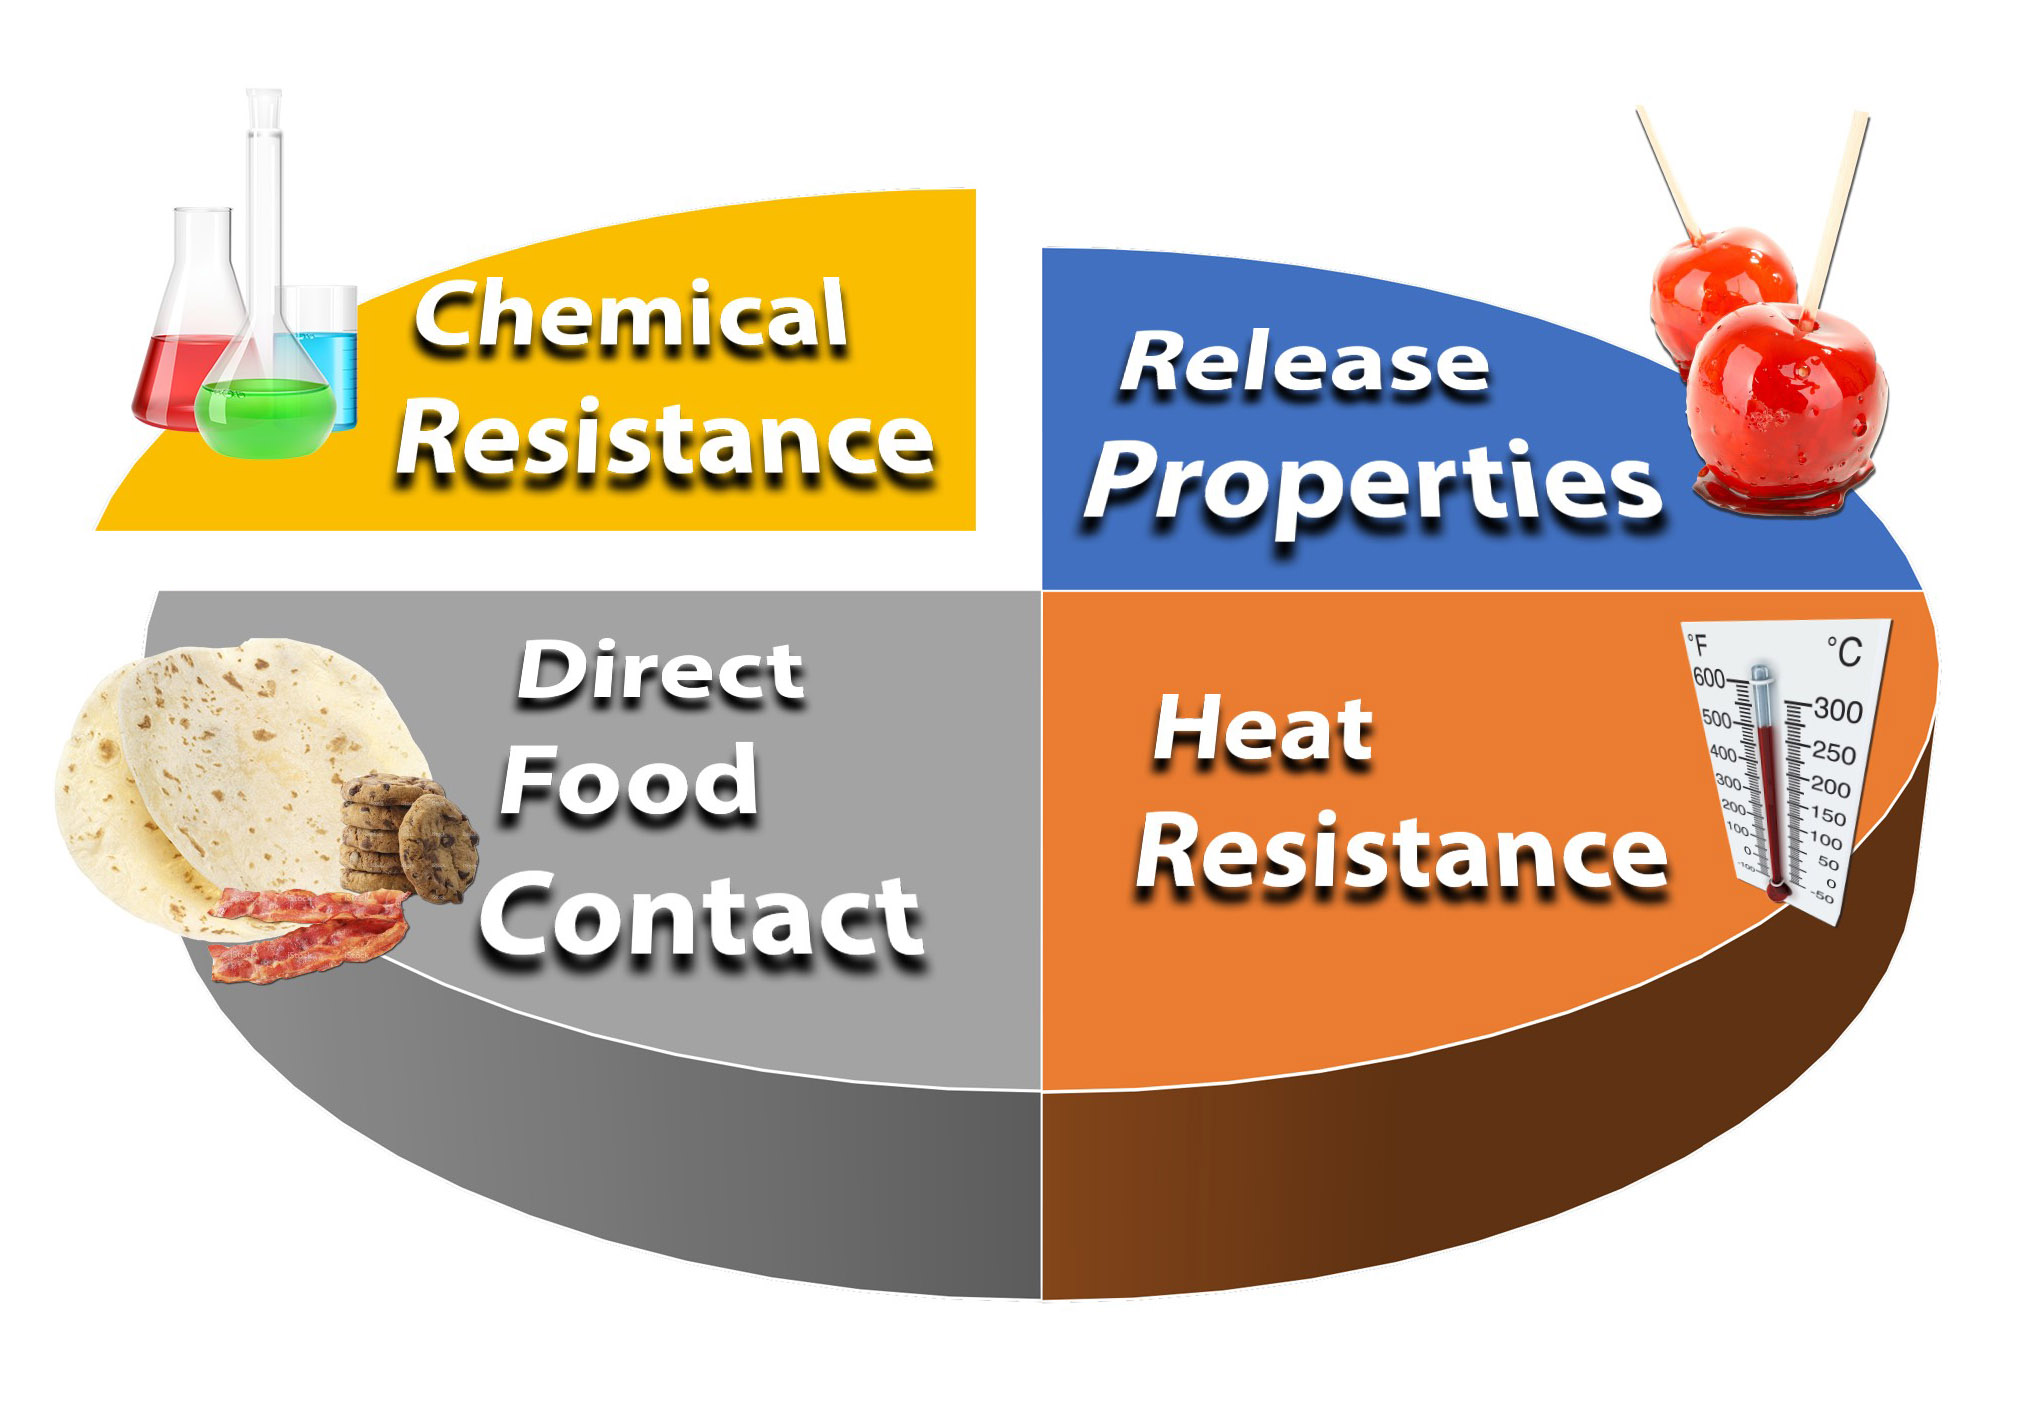 Uploaded Image: /uploads/Application Page Images/Pie Chart - Chemical Resistance.jpg